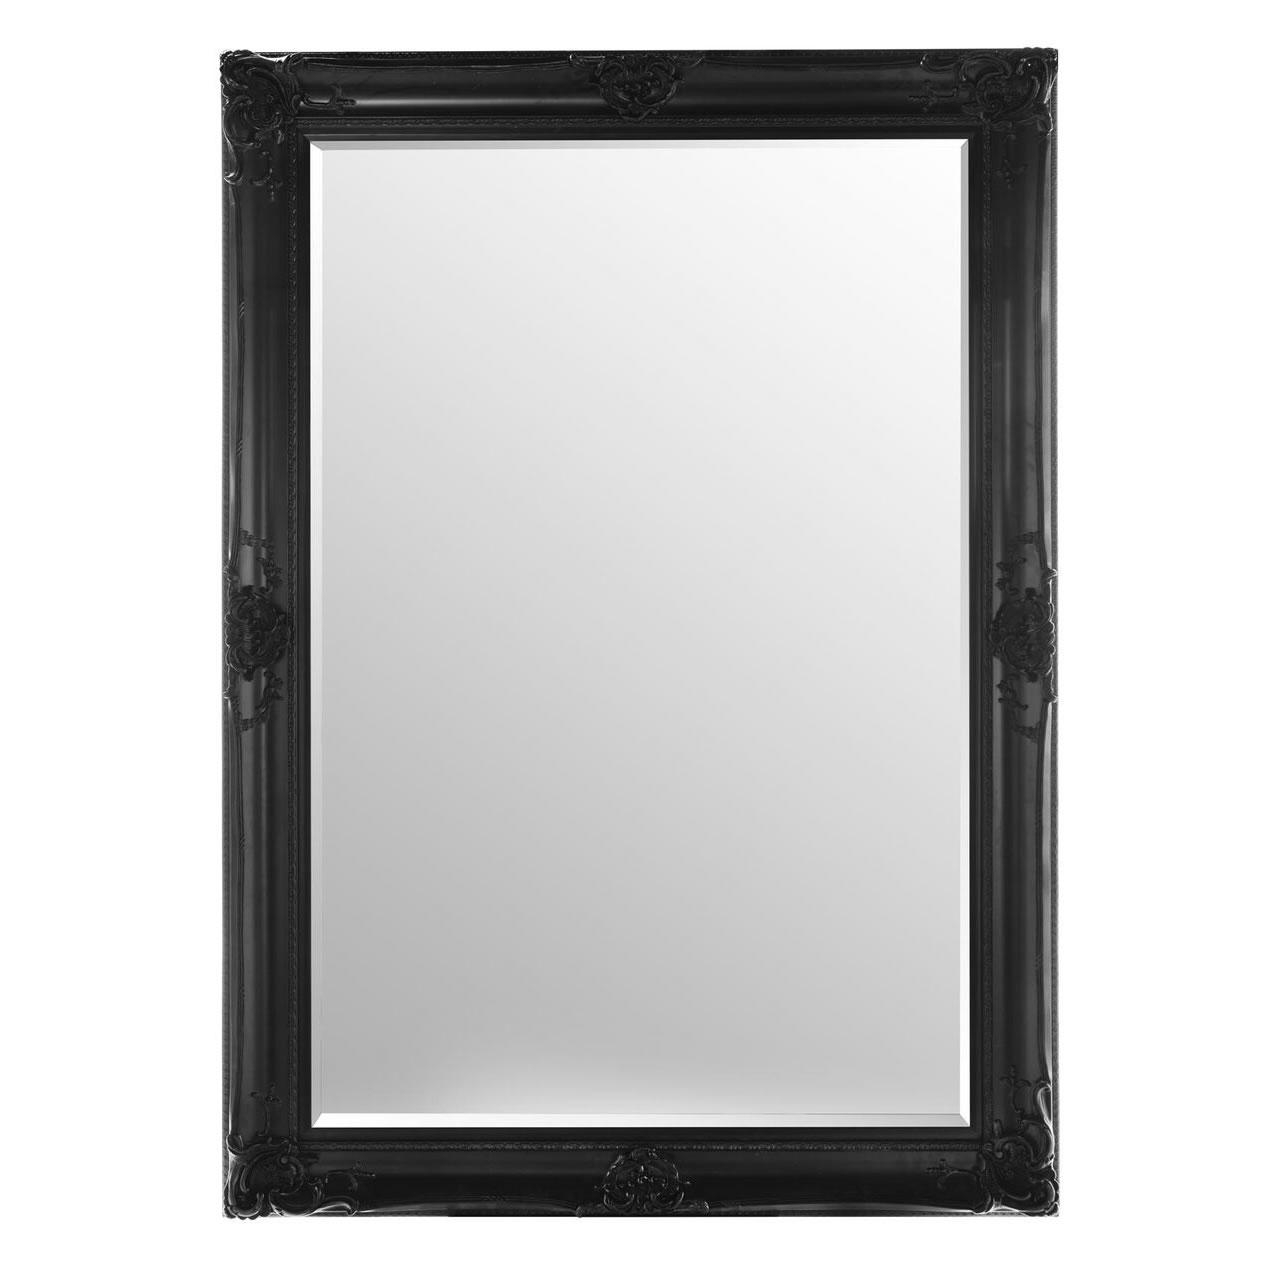 Ornate Framed Mirrors Regarding Large Black Vintage Mirror (Image 13 of 20)